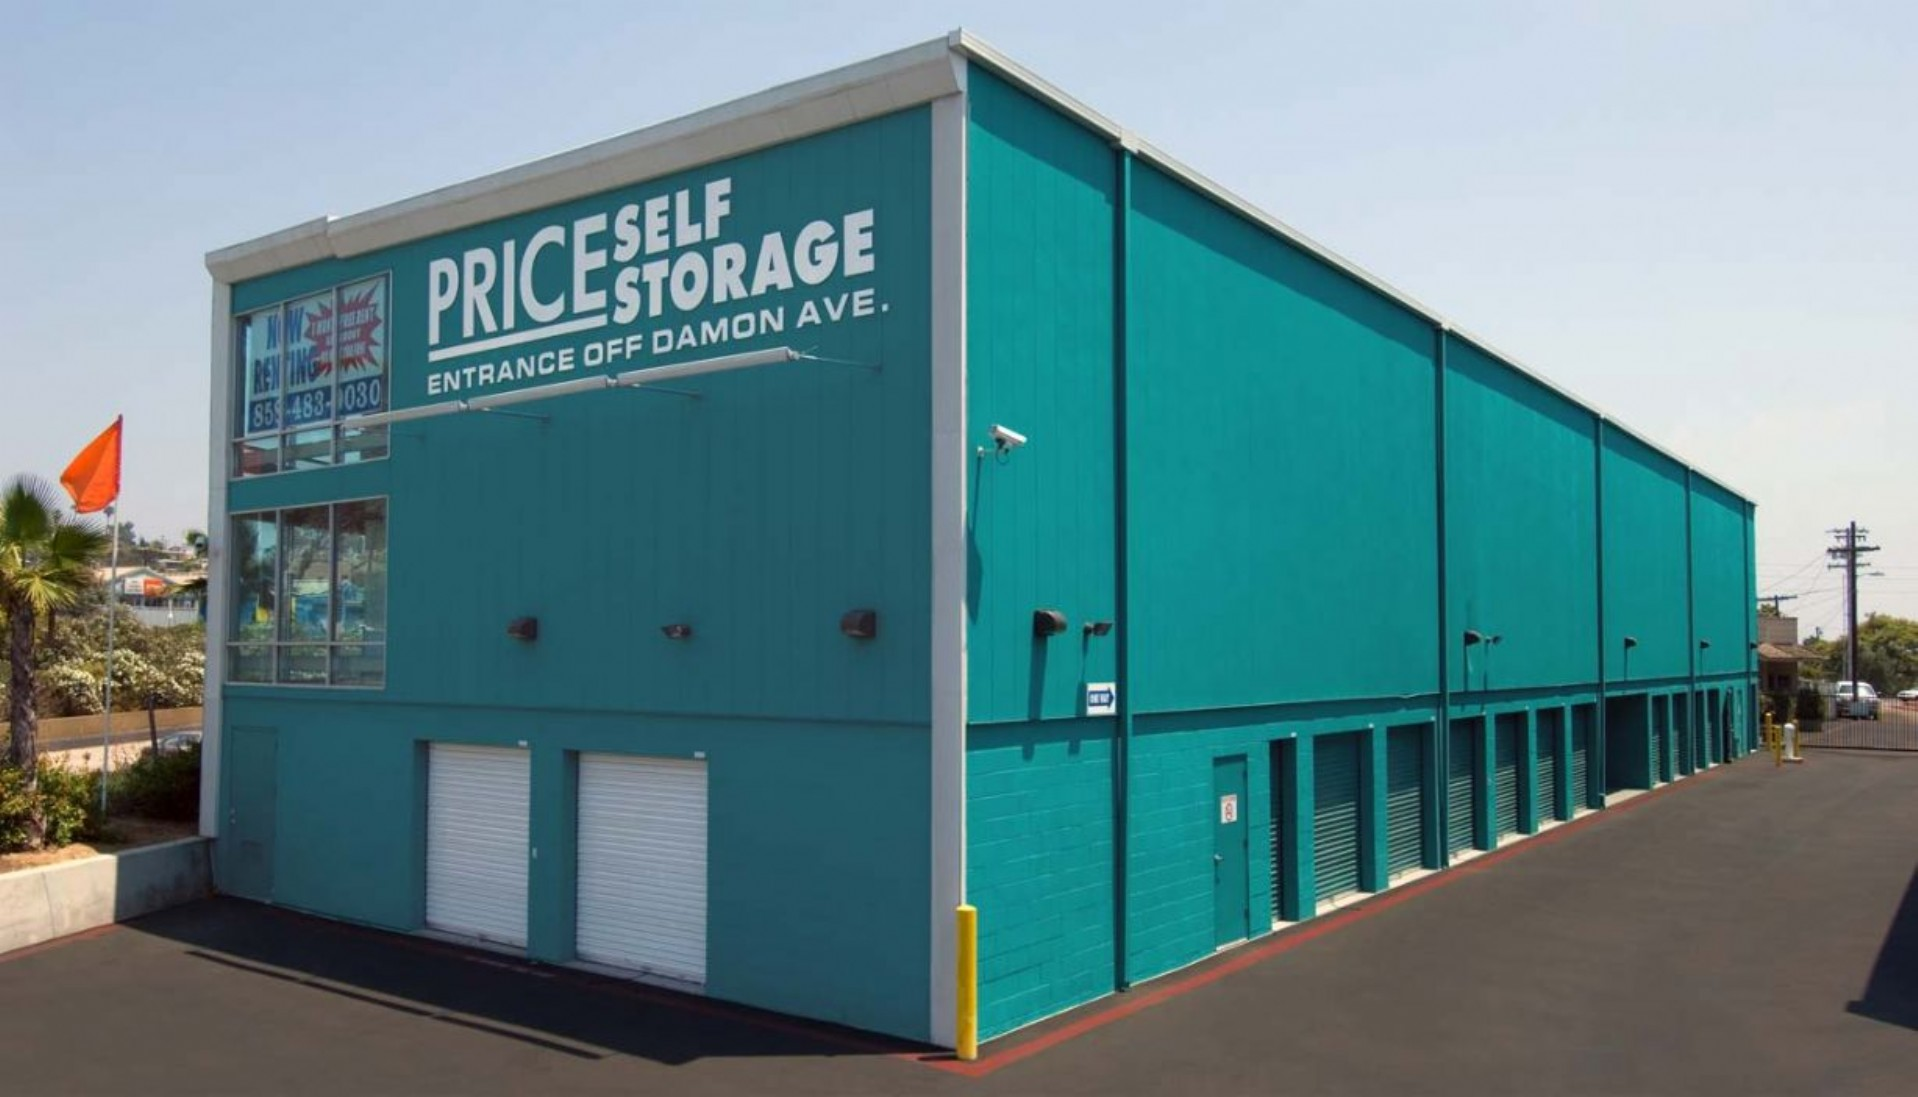 Price Self Storage Pacific Beach three story building with ground floor drive up units and two floors of interior elevator access storage units